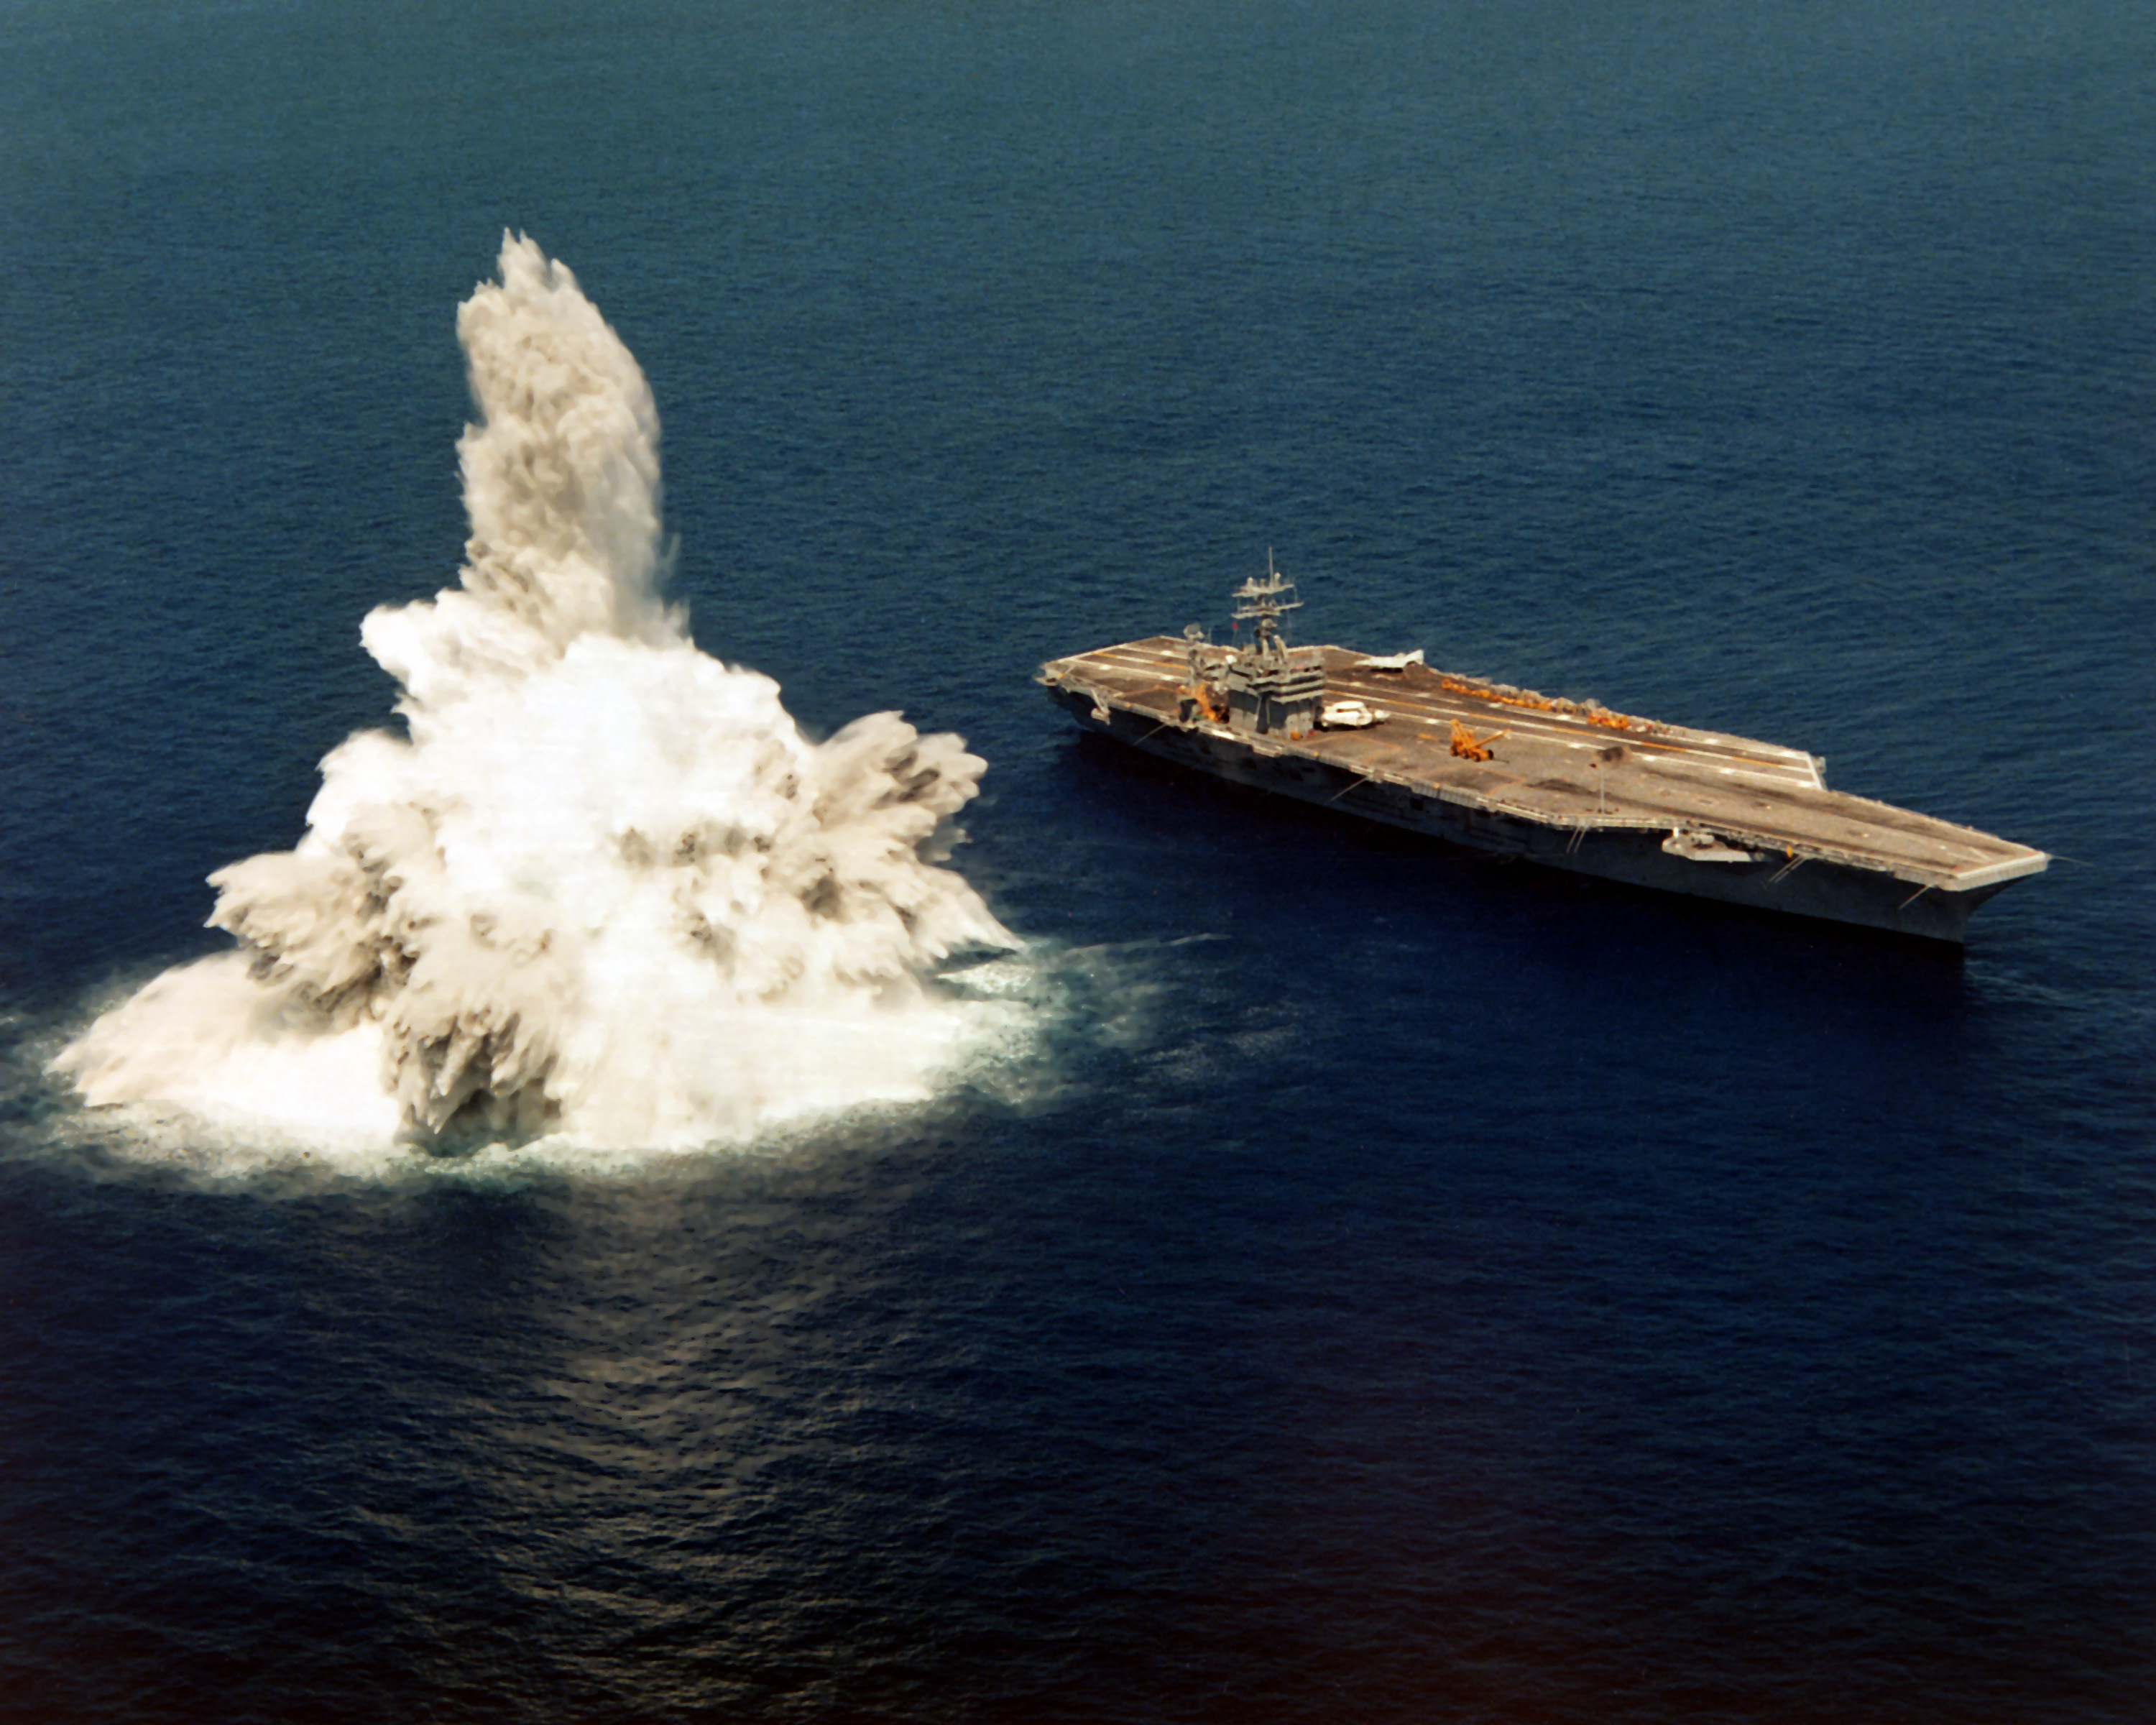 An underwater explosion in the ocean next to an aircraft carrier.